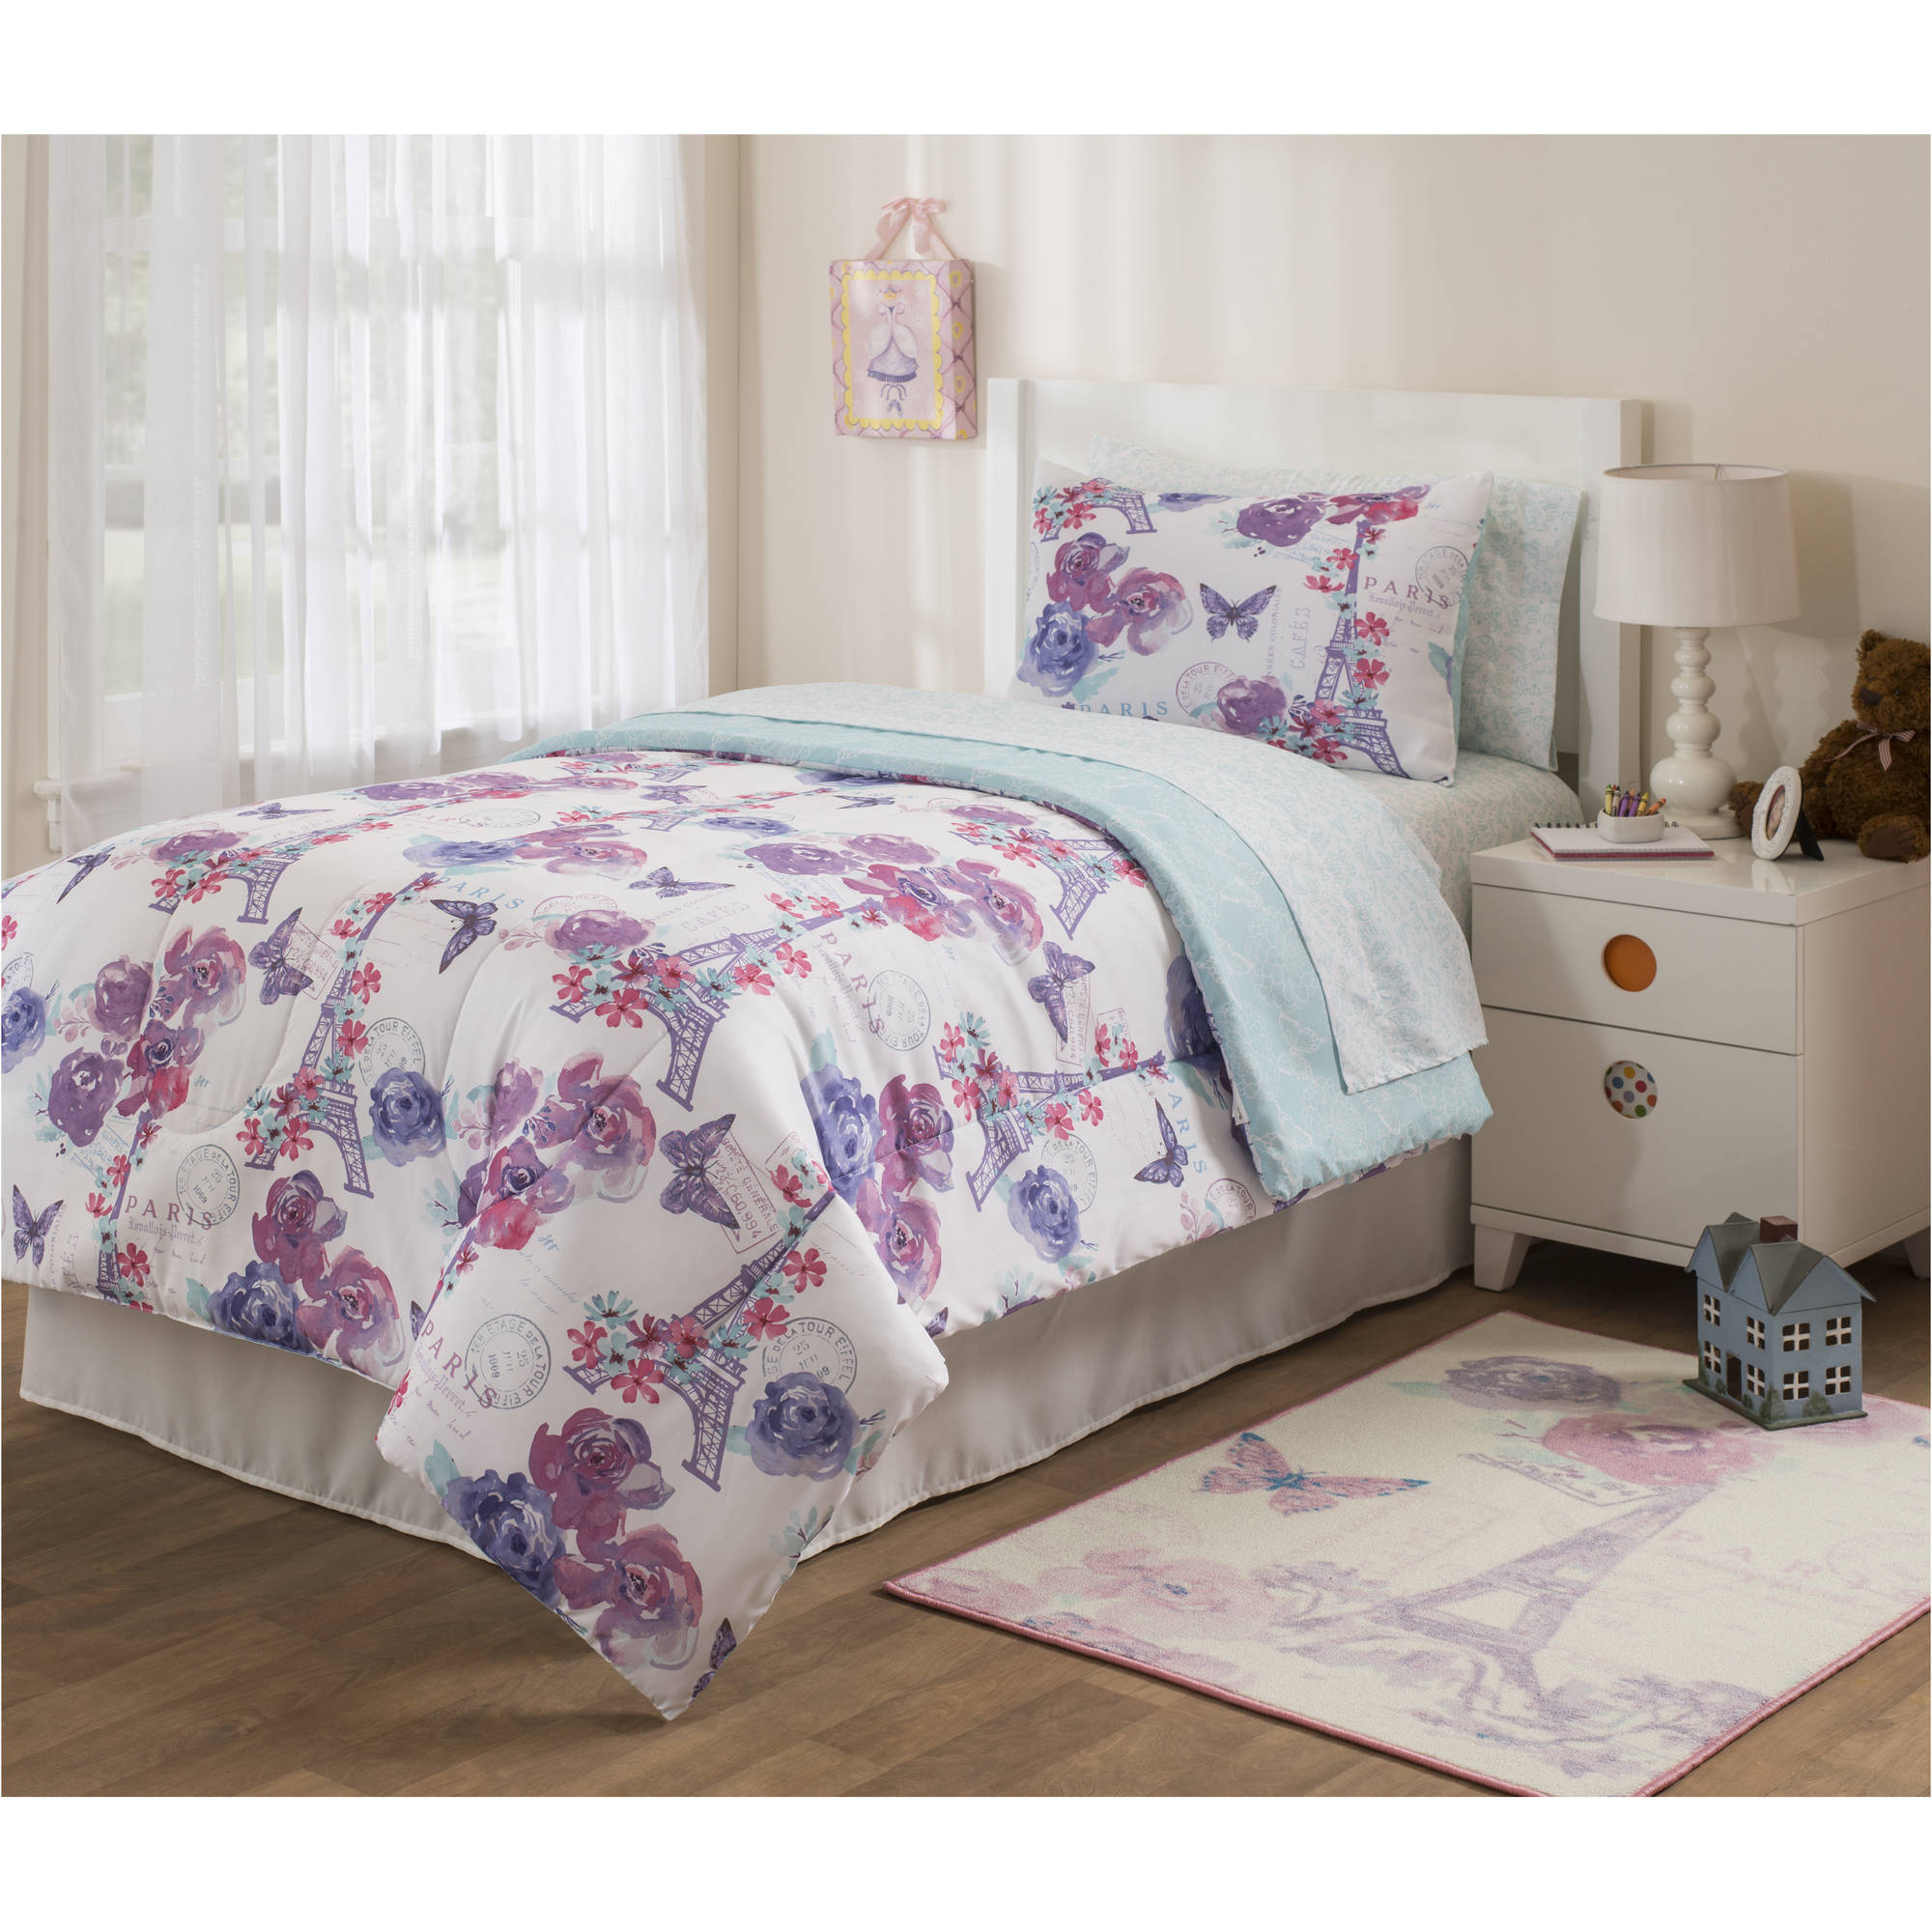 Mainstays Kids Paris Lavender Bed In A Bag Bedding Set